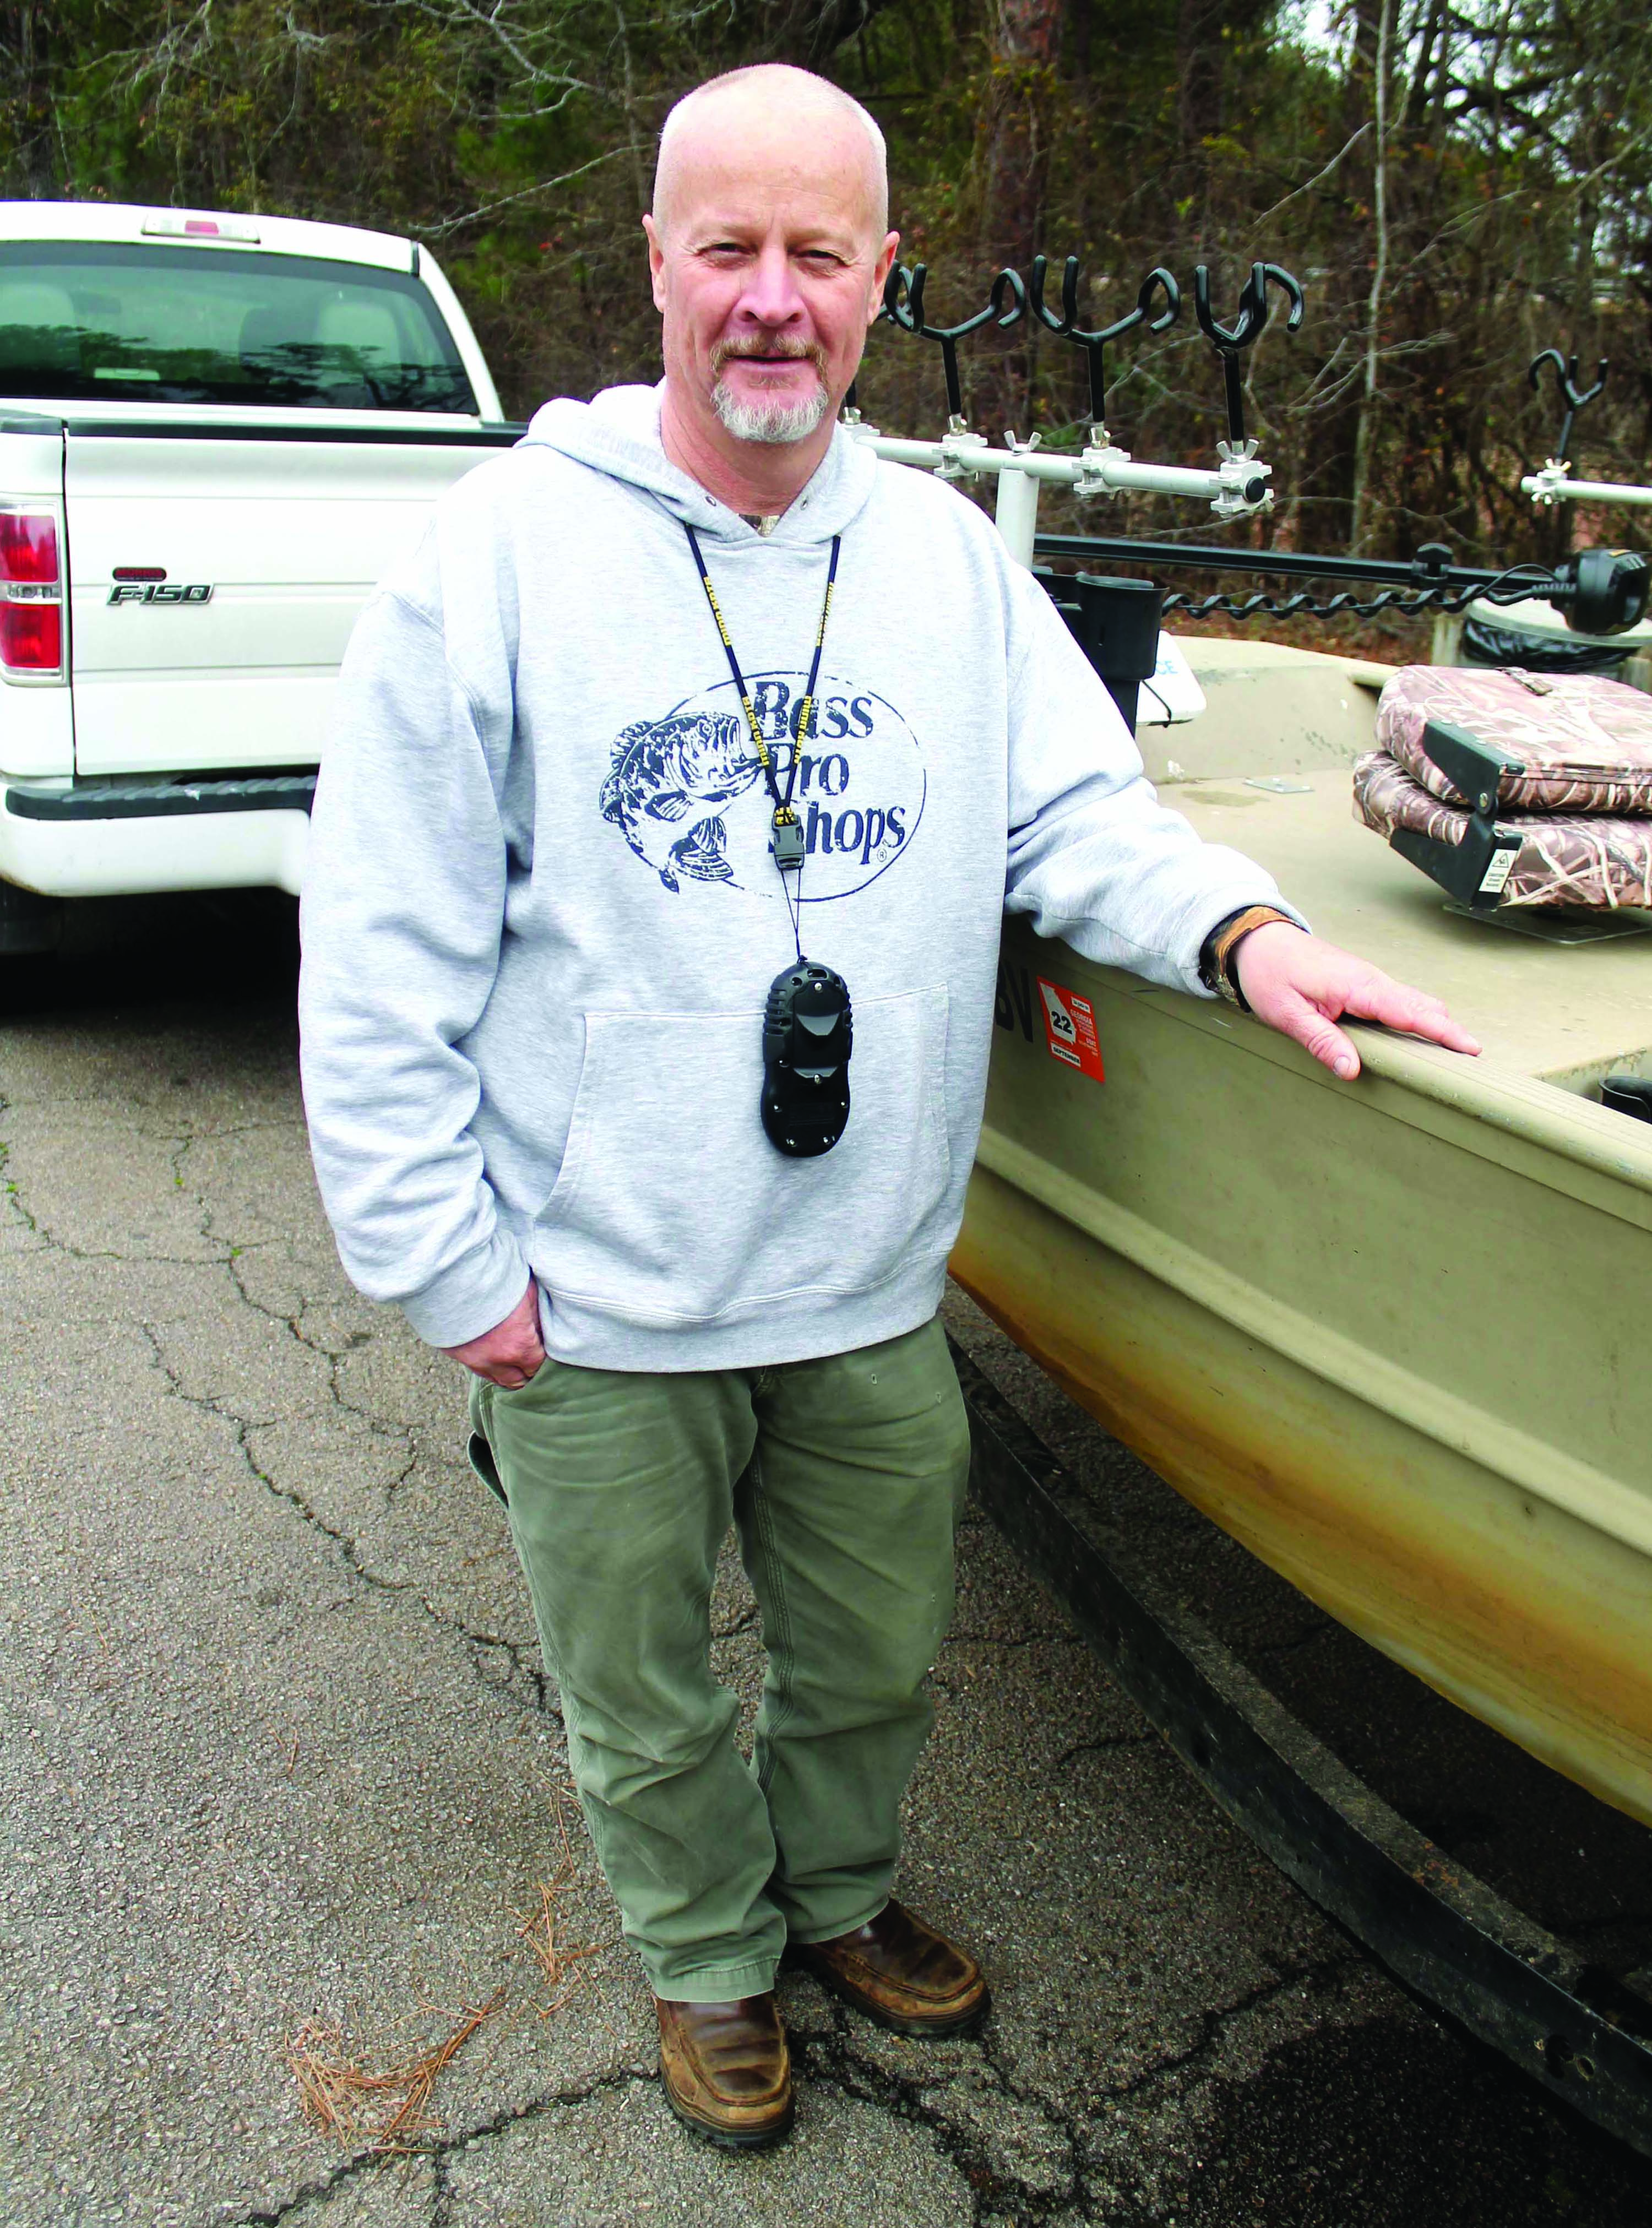 Robinson Cashes in with 64 Crappie, All are Released